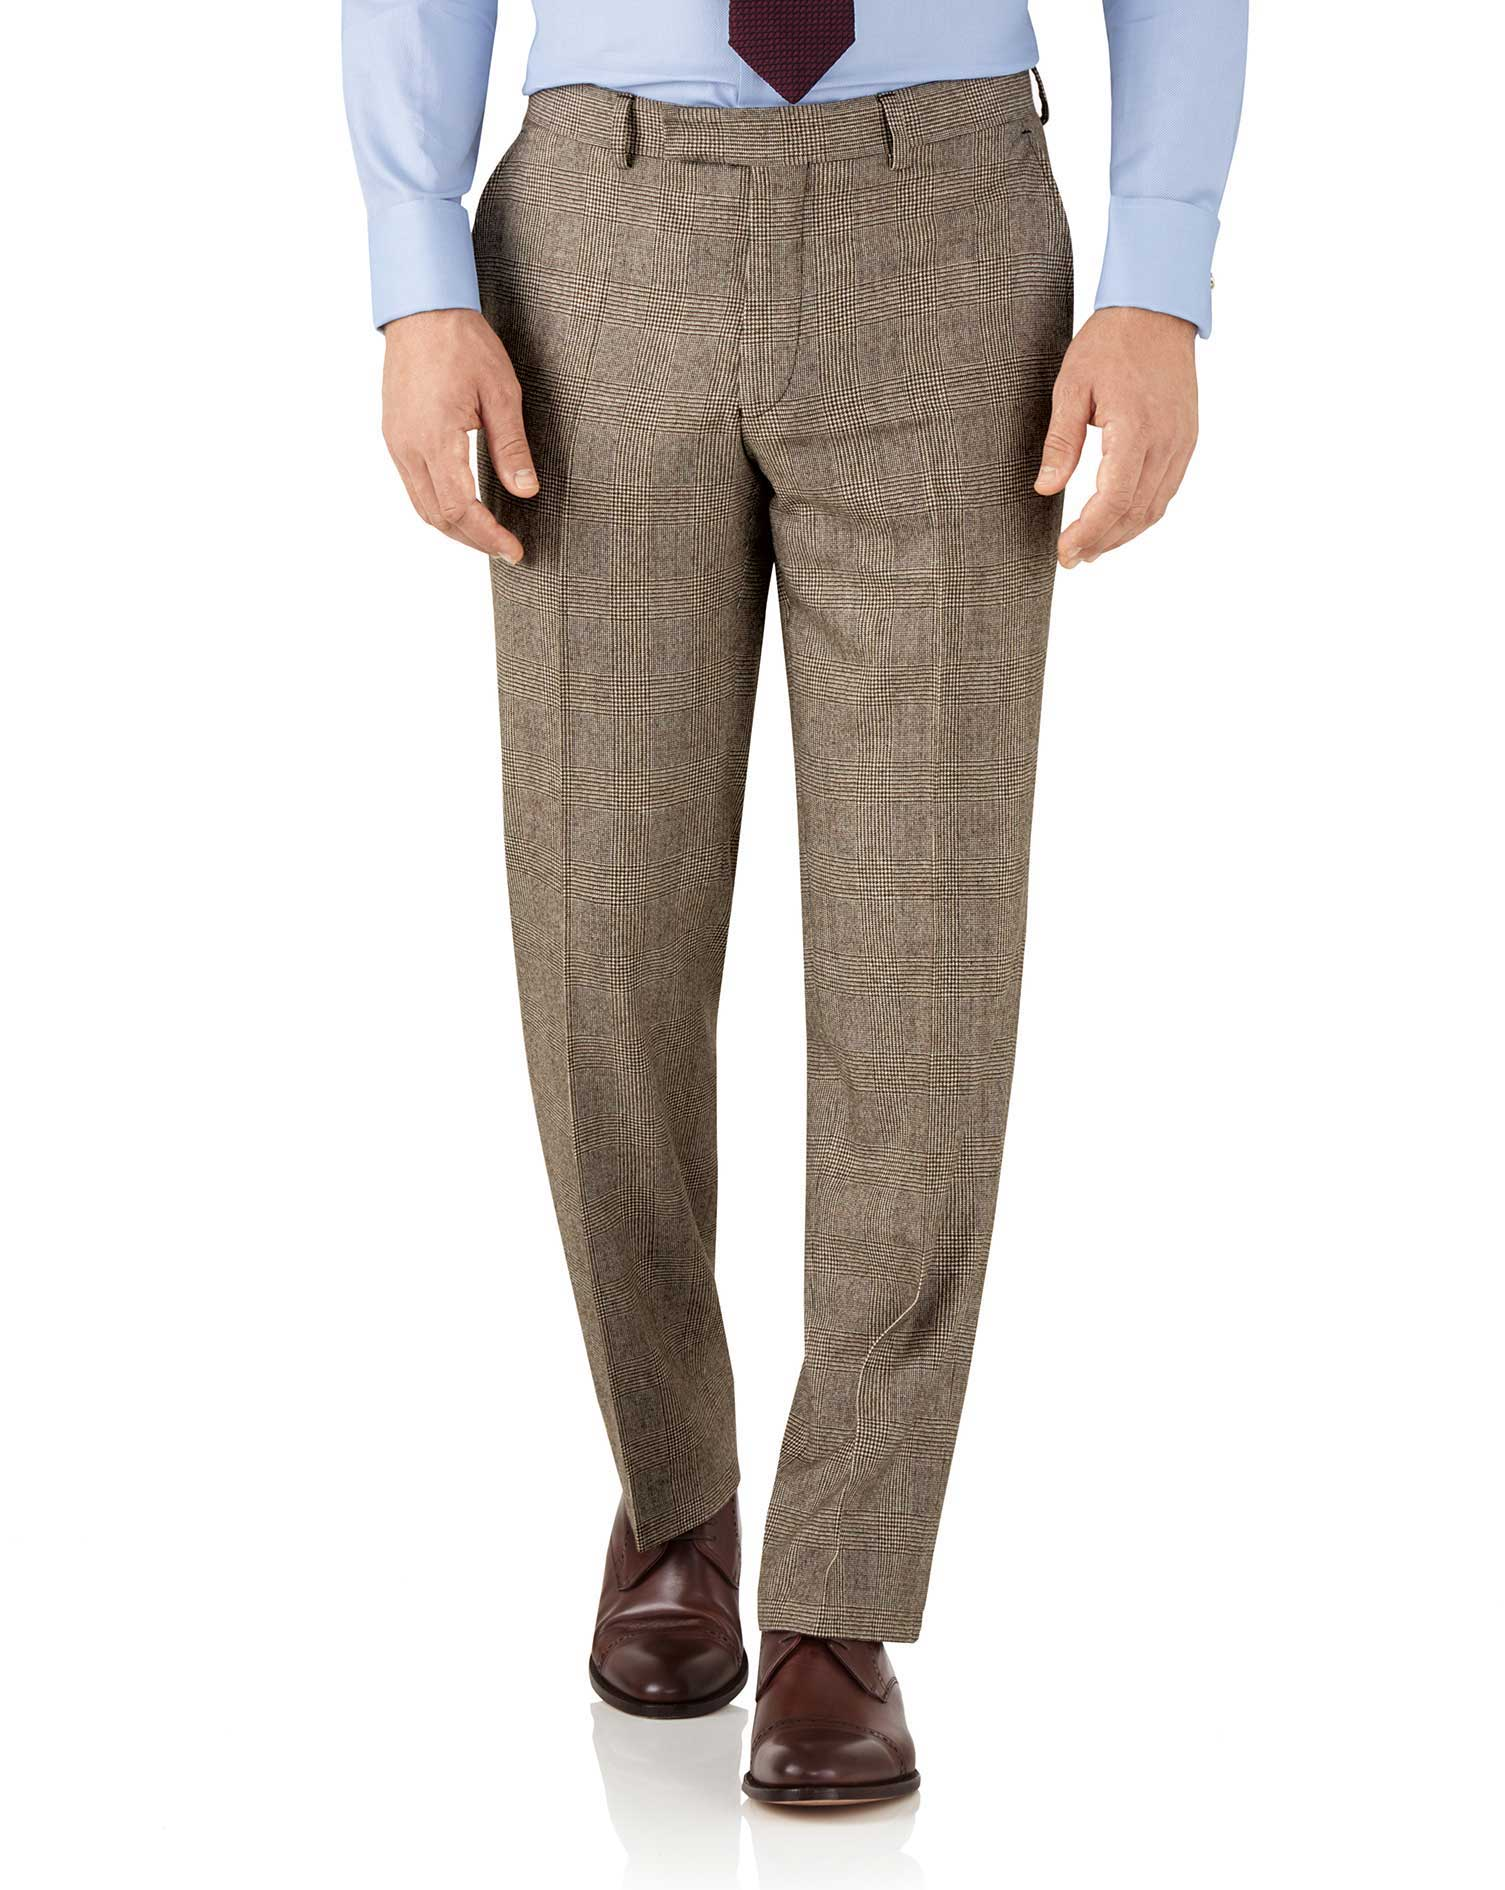 Tan Check Classic Fit British Serge Luxury Suit Trousers Size W32 L34 by Charles Tyrwhitt